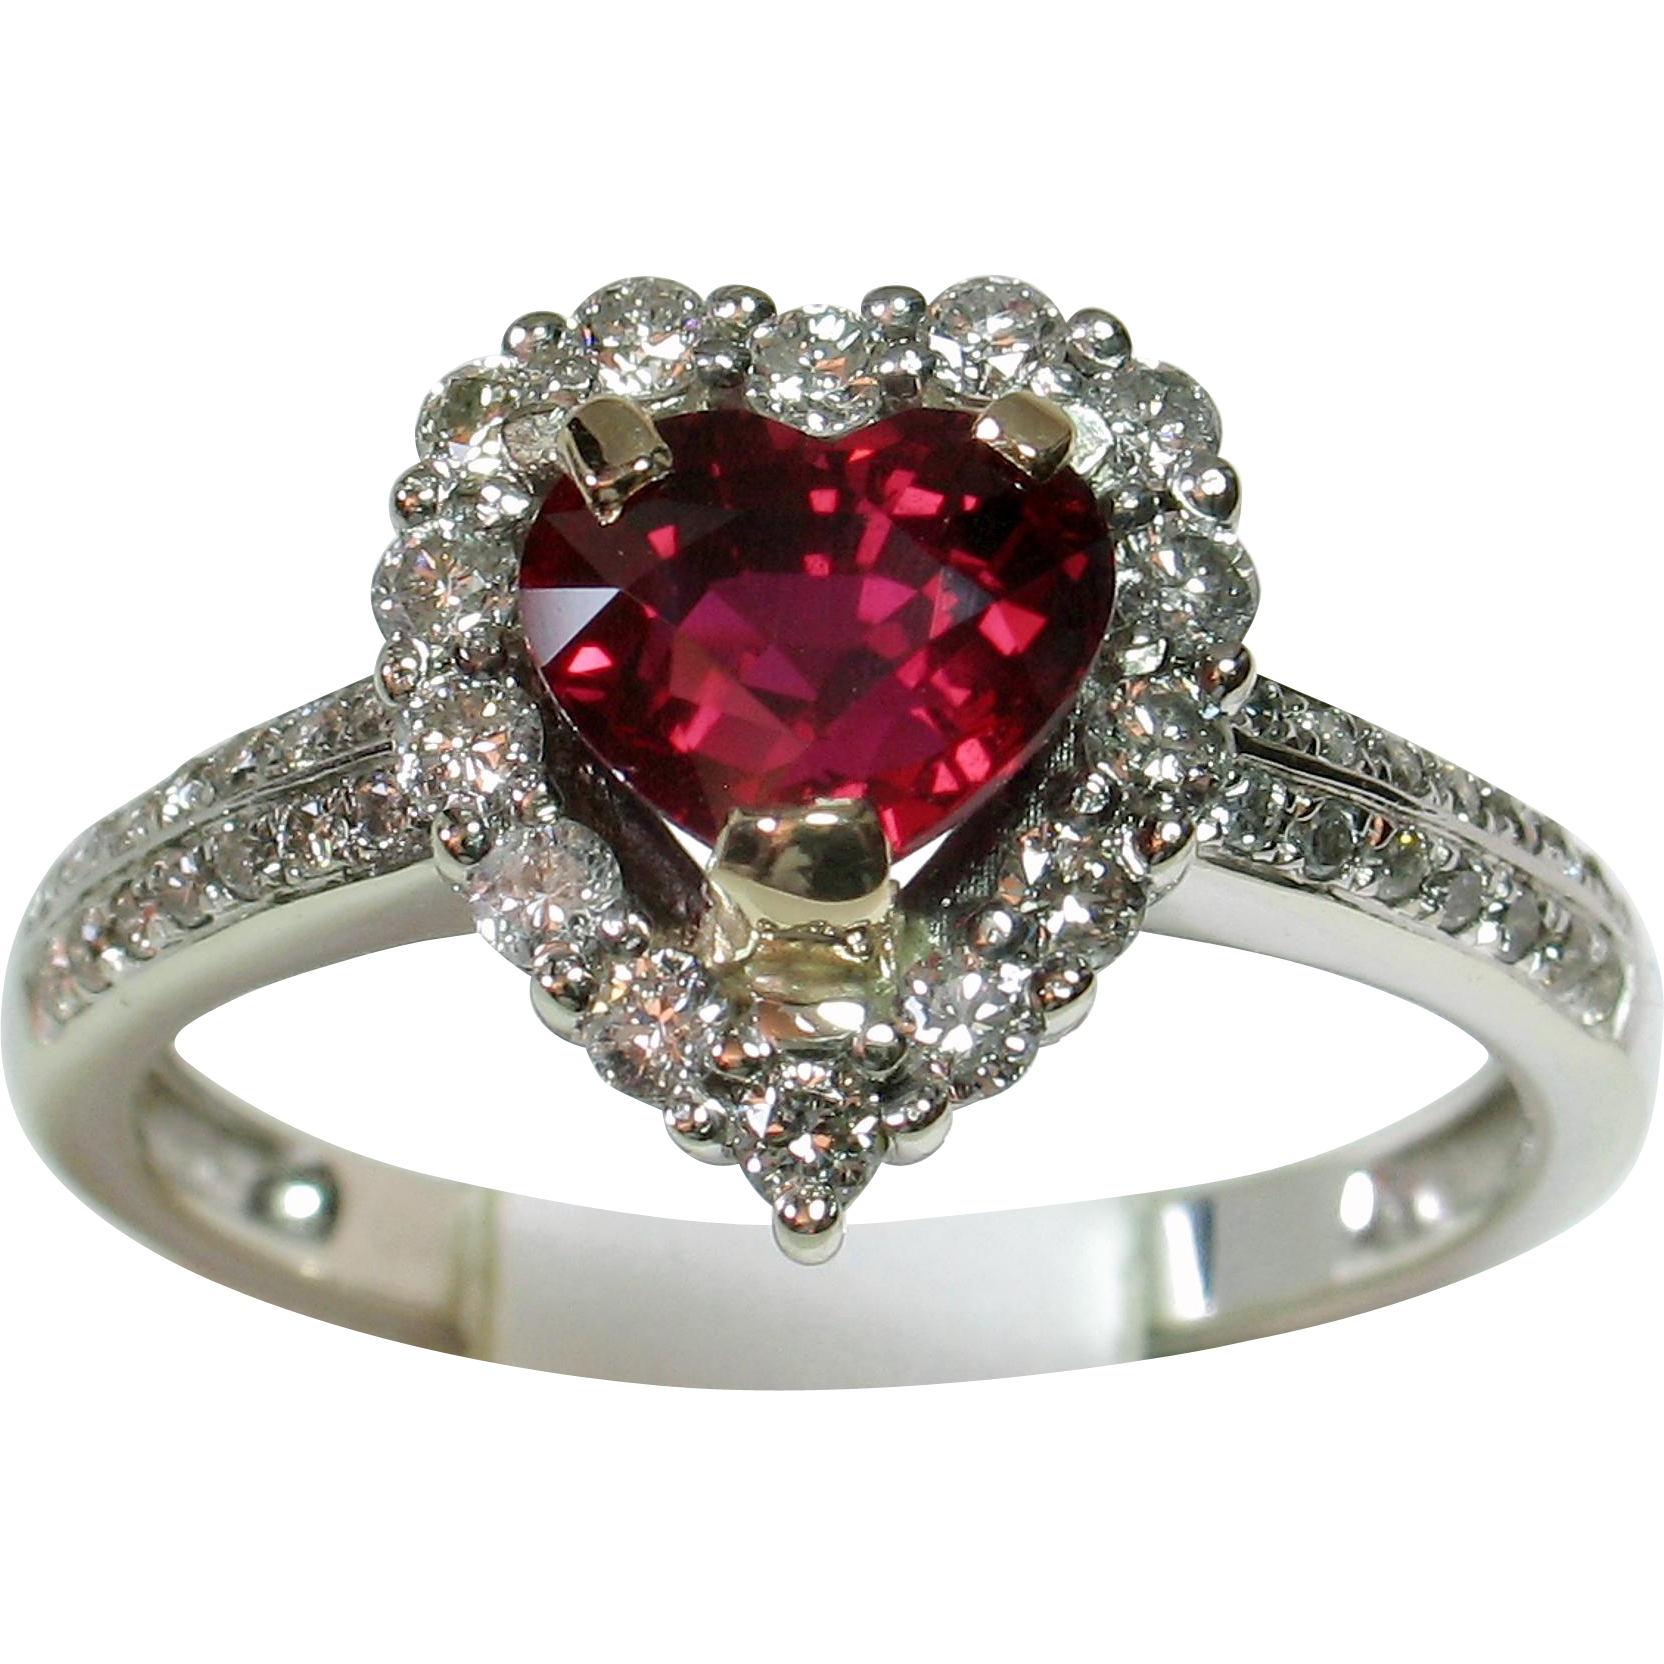 Ruby transparent unheated. Vivid rare heart shaped